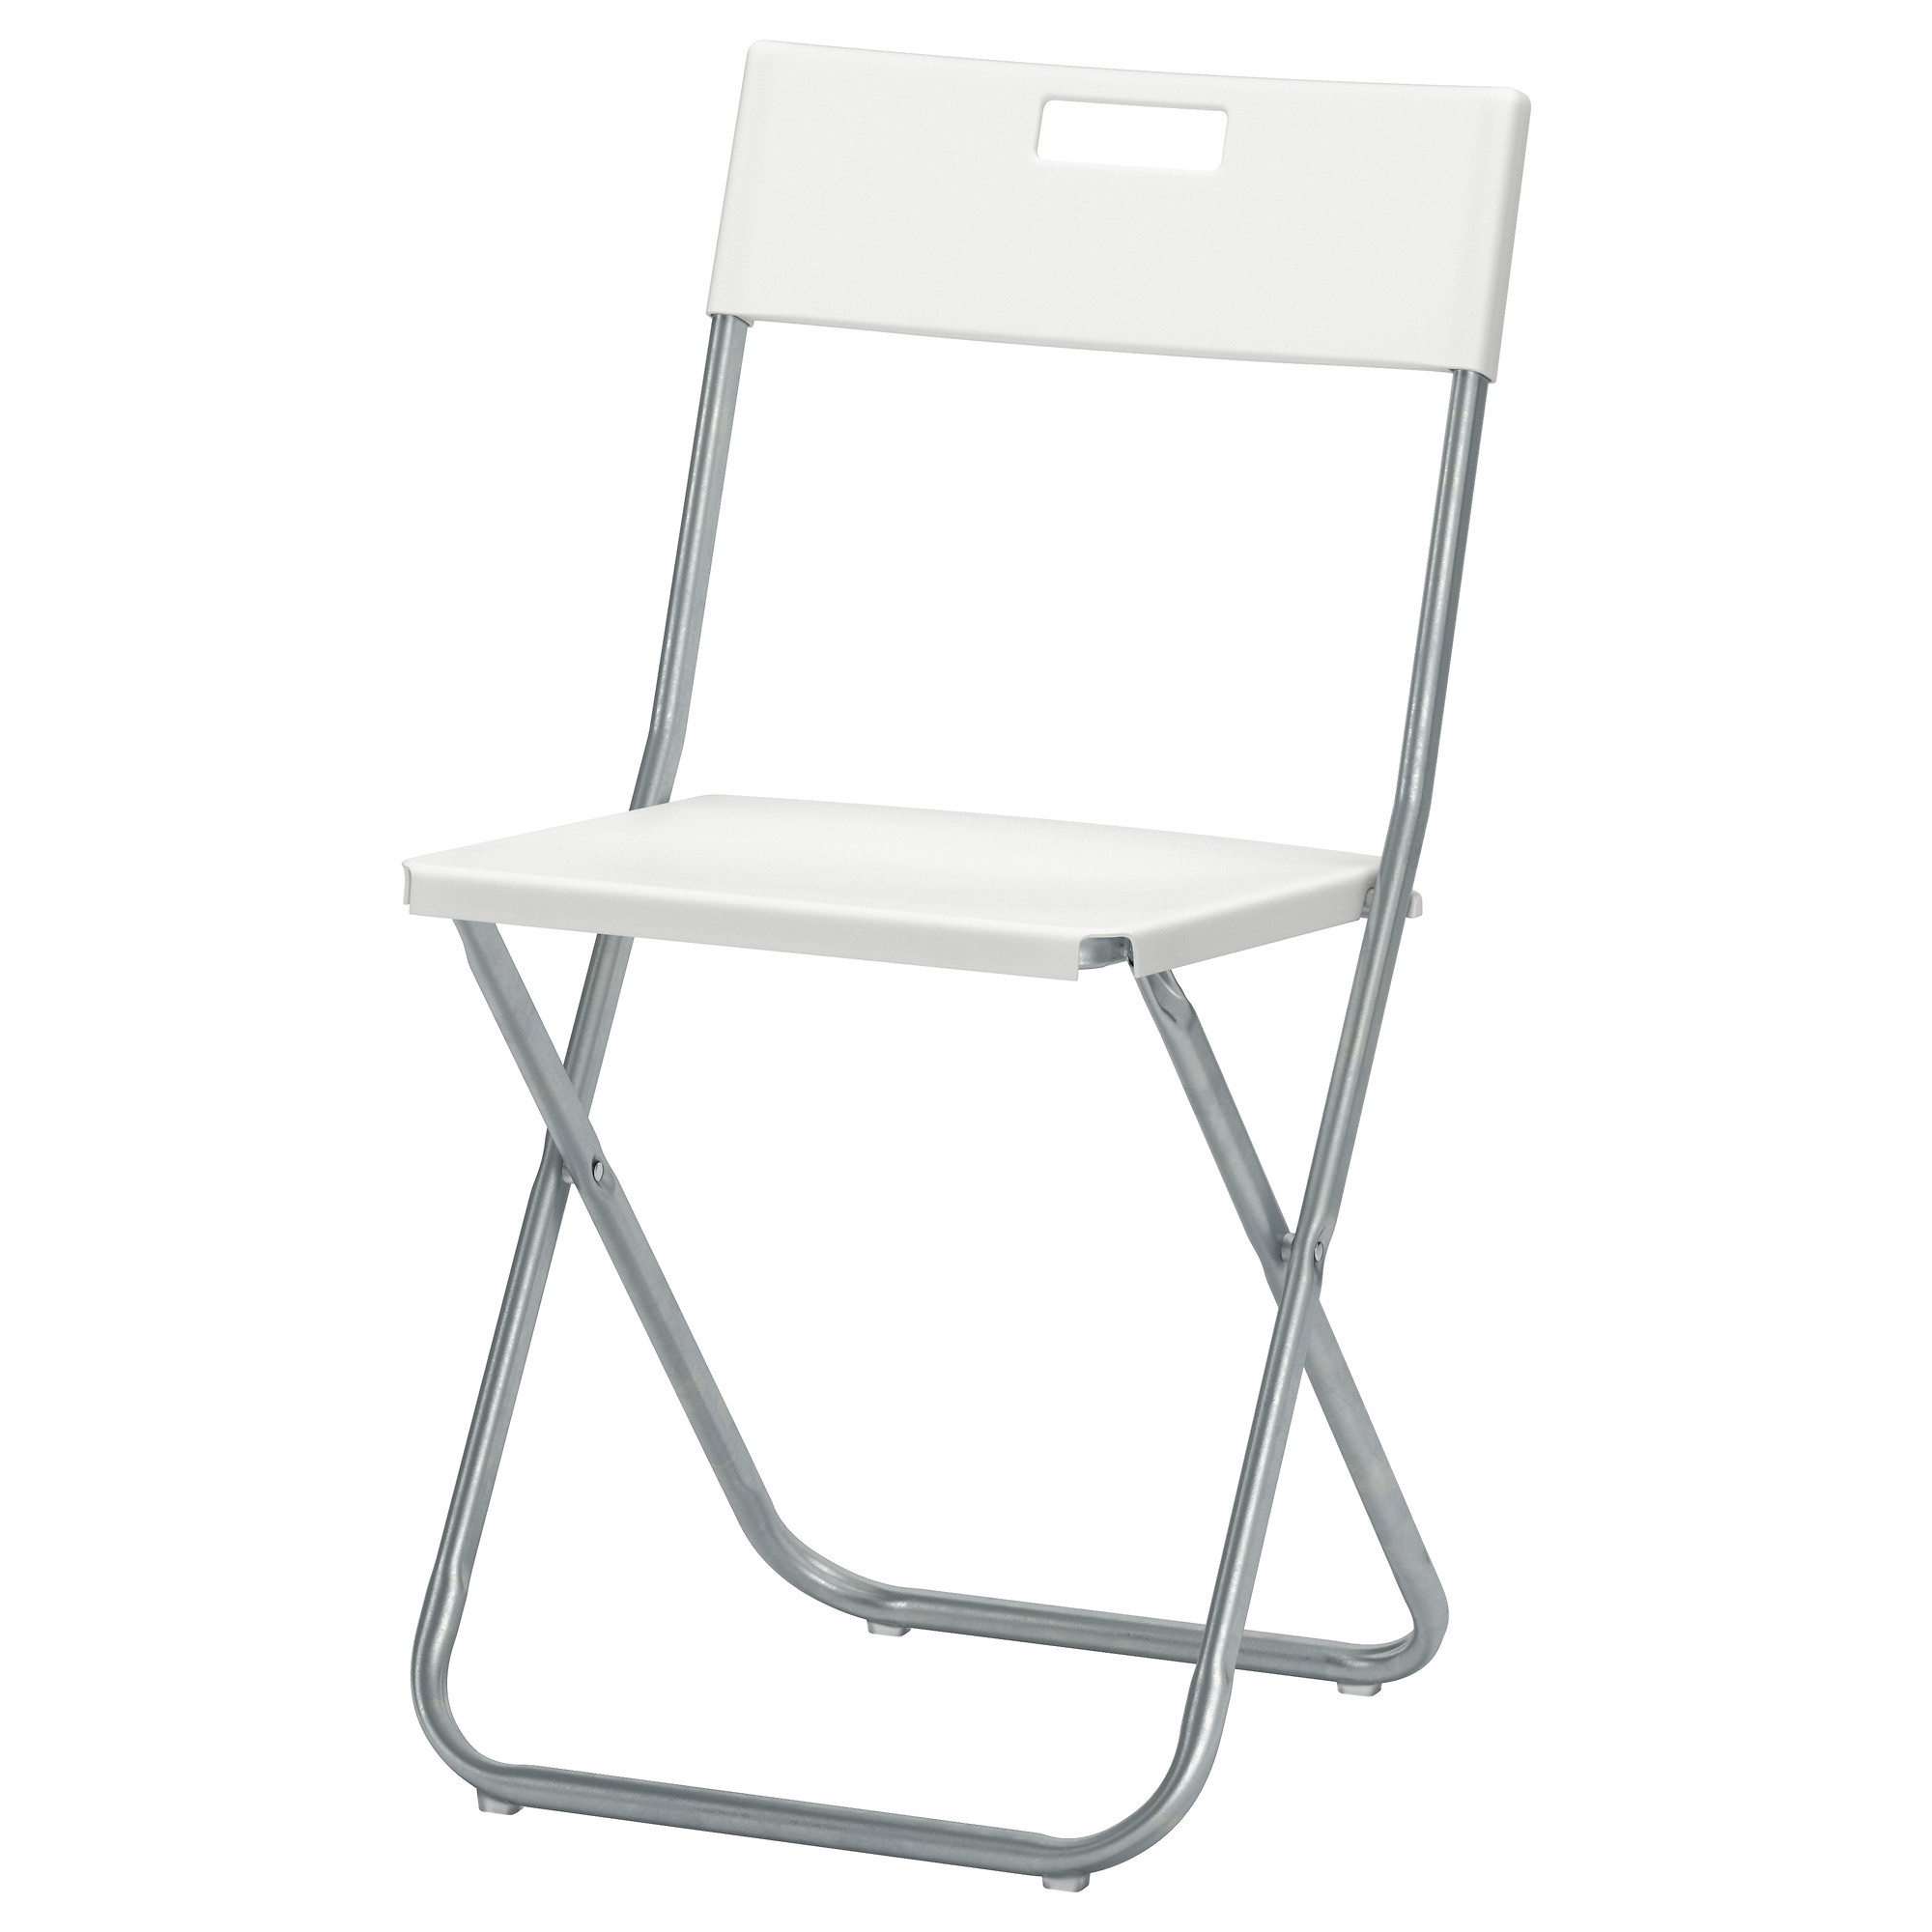 Gunde Folding Chair White Ikea Hong Kong